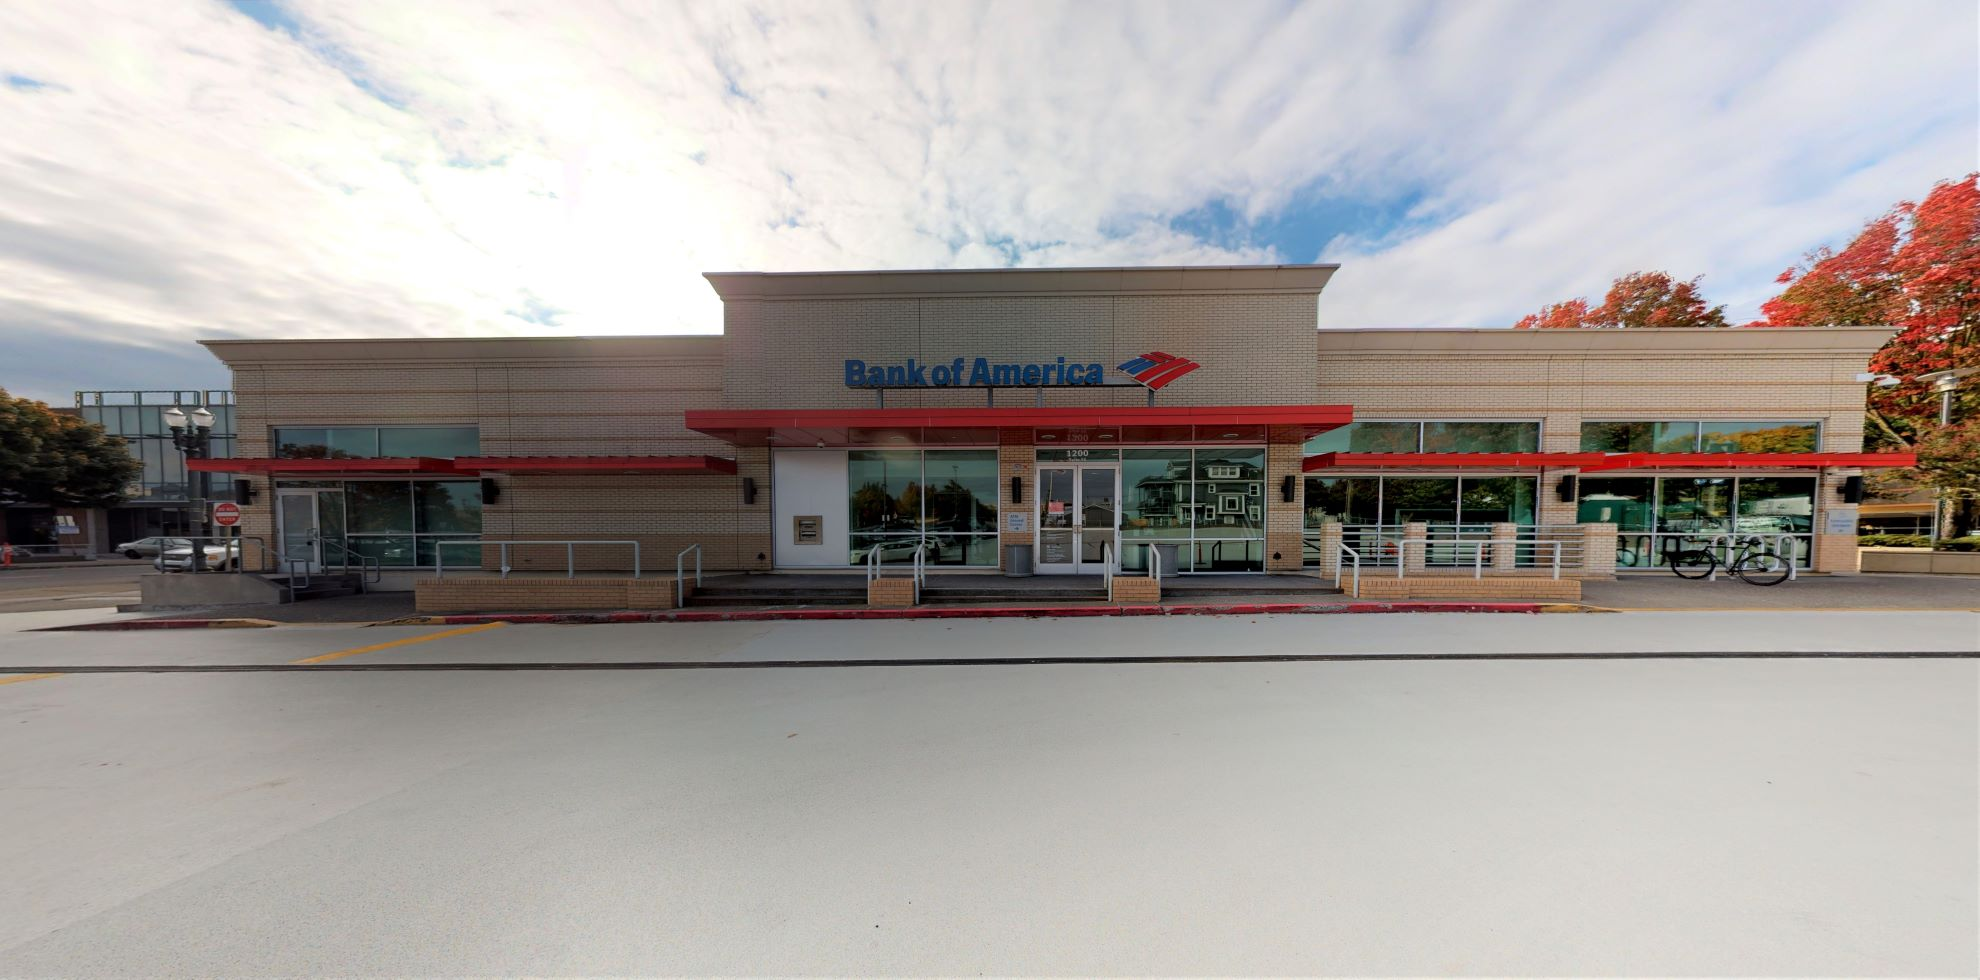 Bank of America financial center with walk-up ATM | 1200 NE Broadway St STE 50, Portland, OR 97232